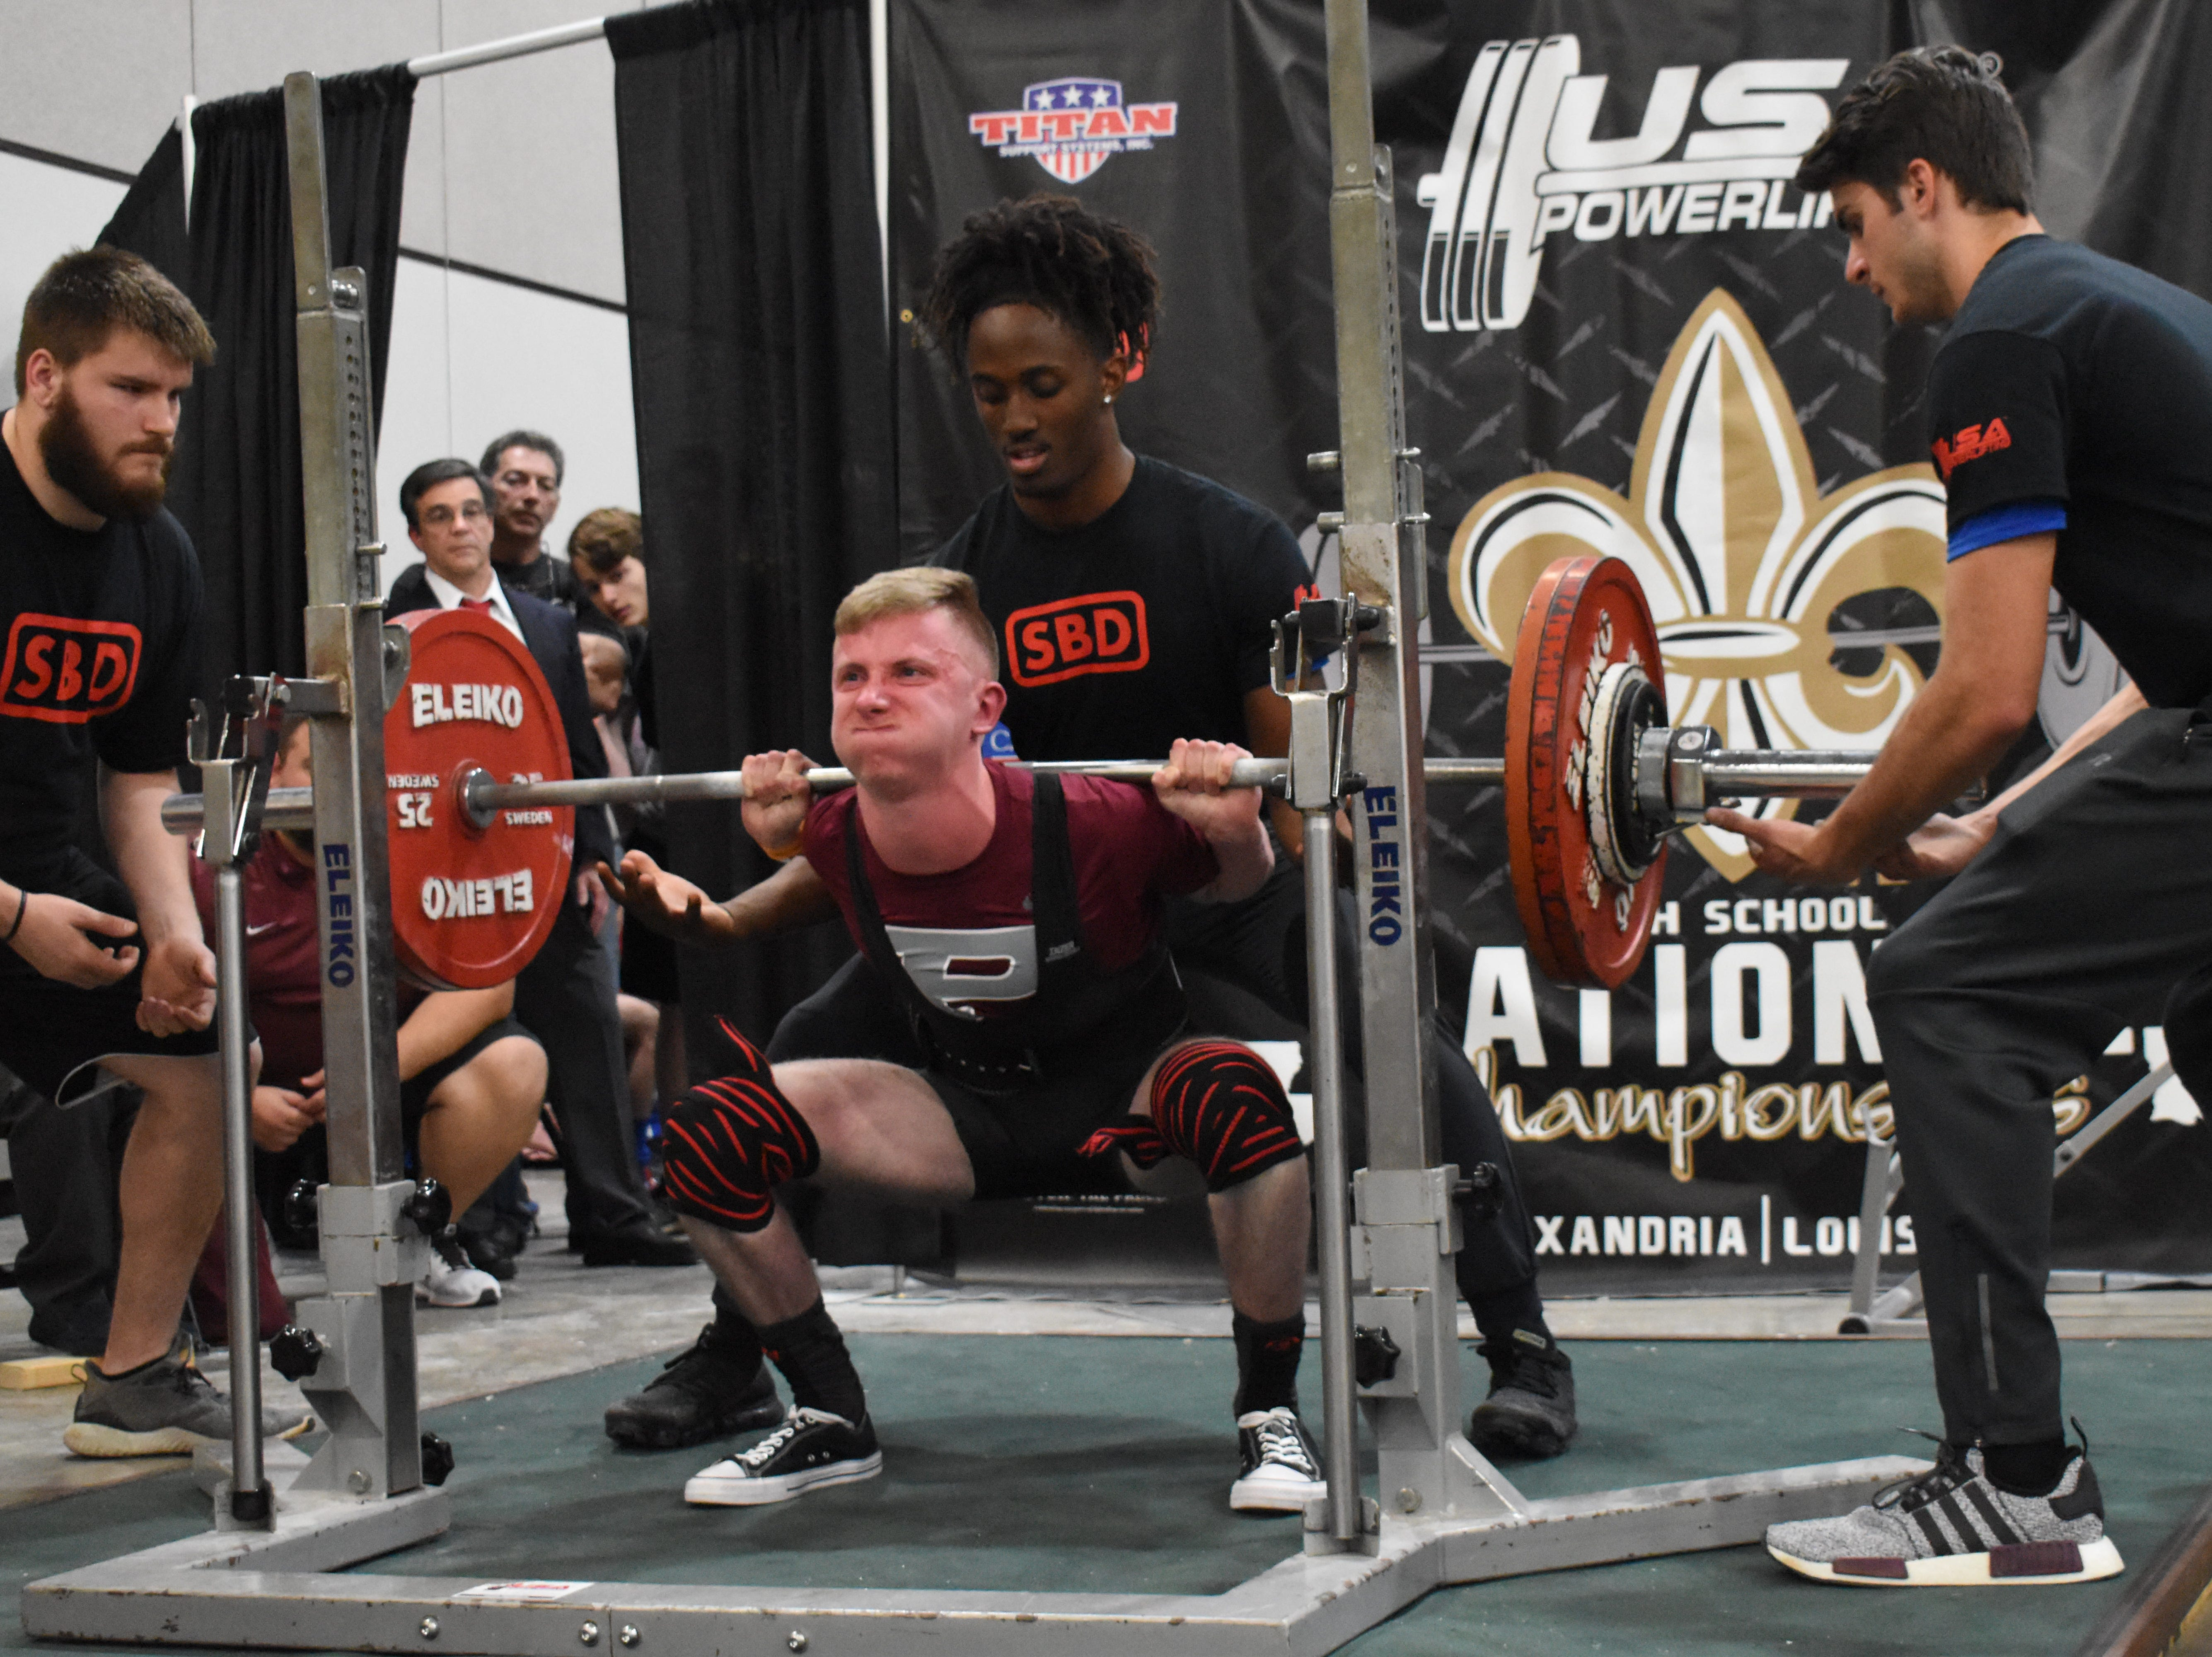 Matthew Porter of Pineville performs a squat in the USA Powerlifting High School National Championships held Friday, March 29, 2019. The championships, equipped and raw, are being held at the Randolph Riverfront Center in downtown Alexandria with high school powerlifters from across the country competing in the four-day event. Powerlifters from local schools are also competing.